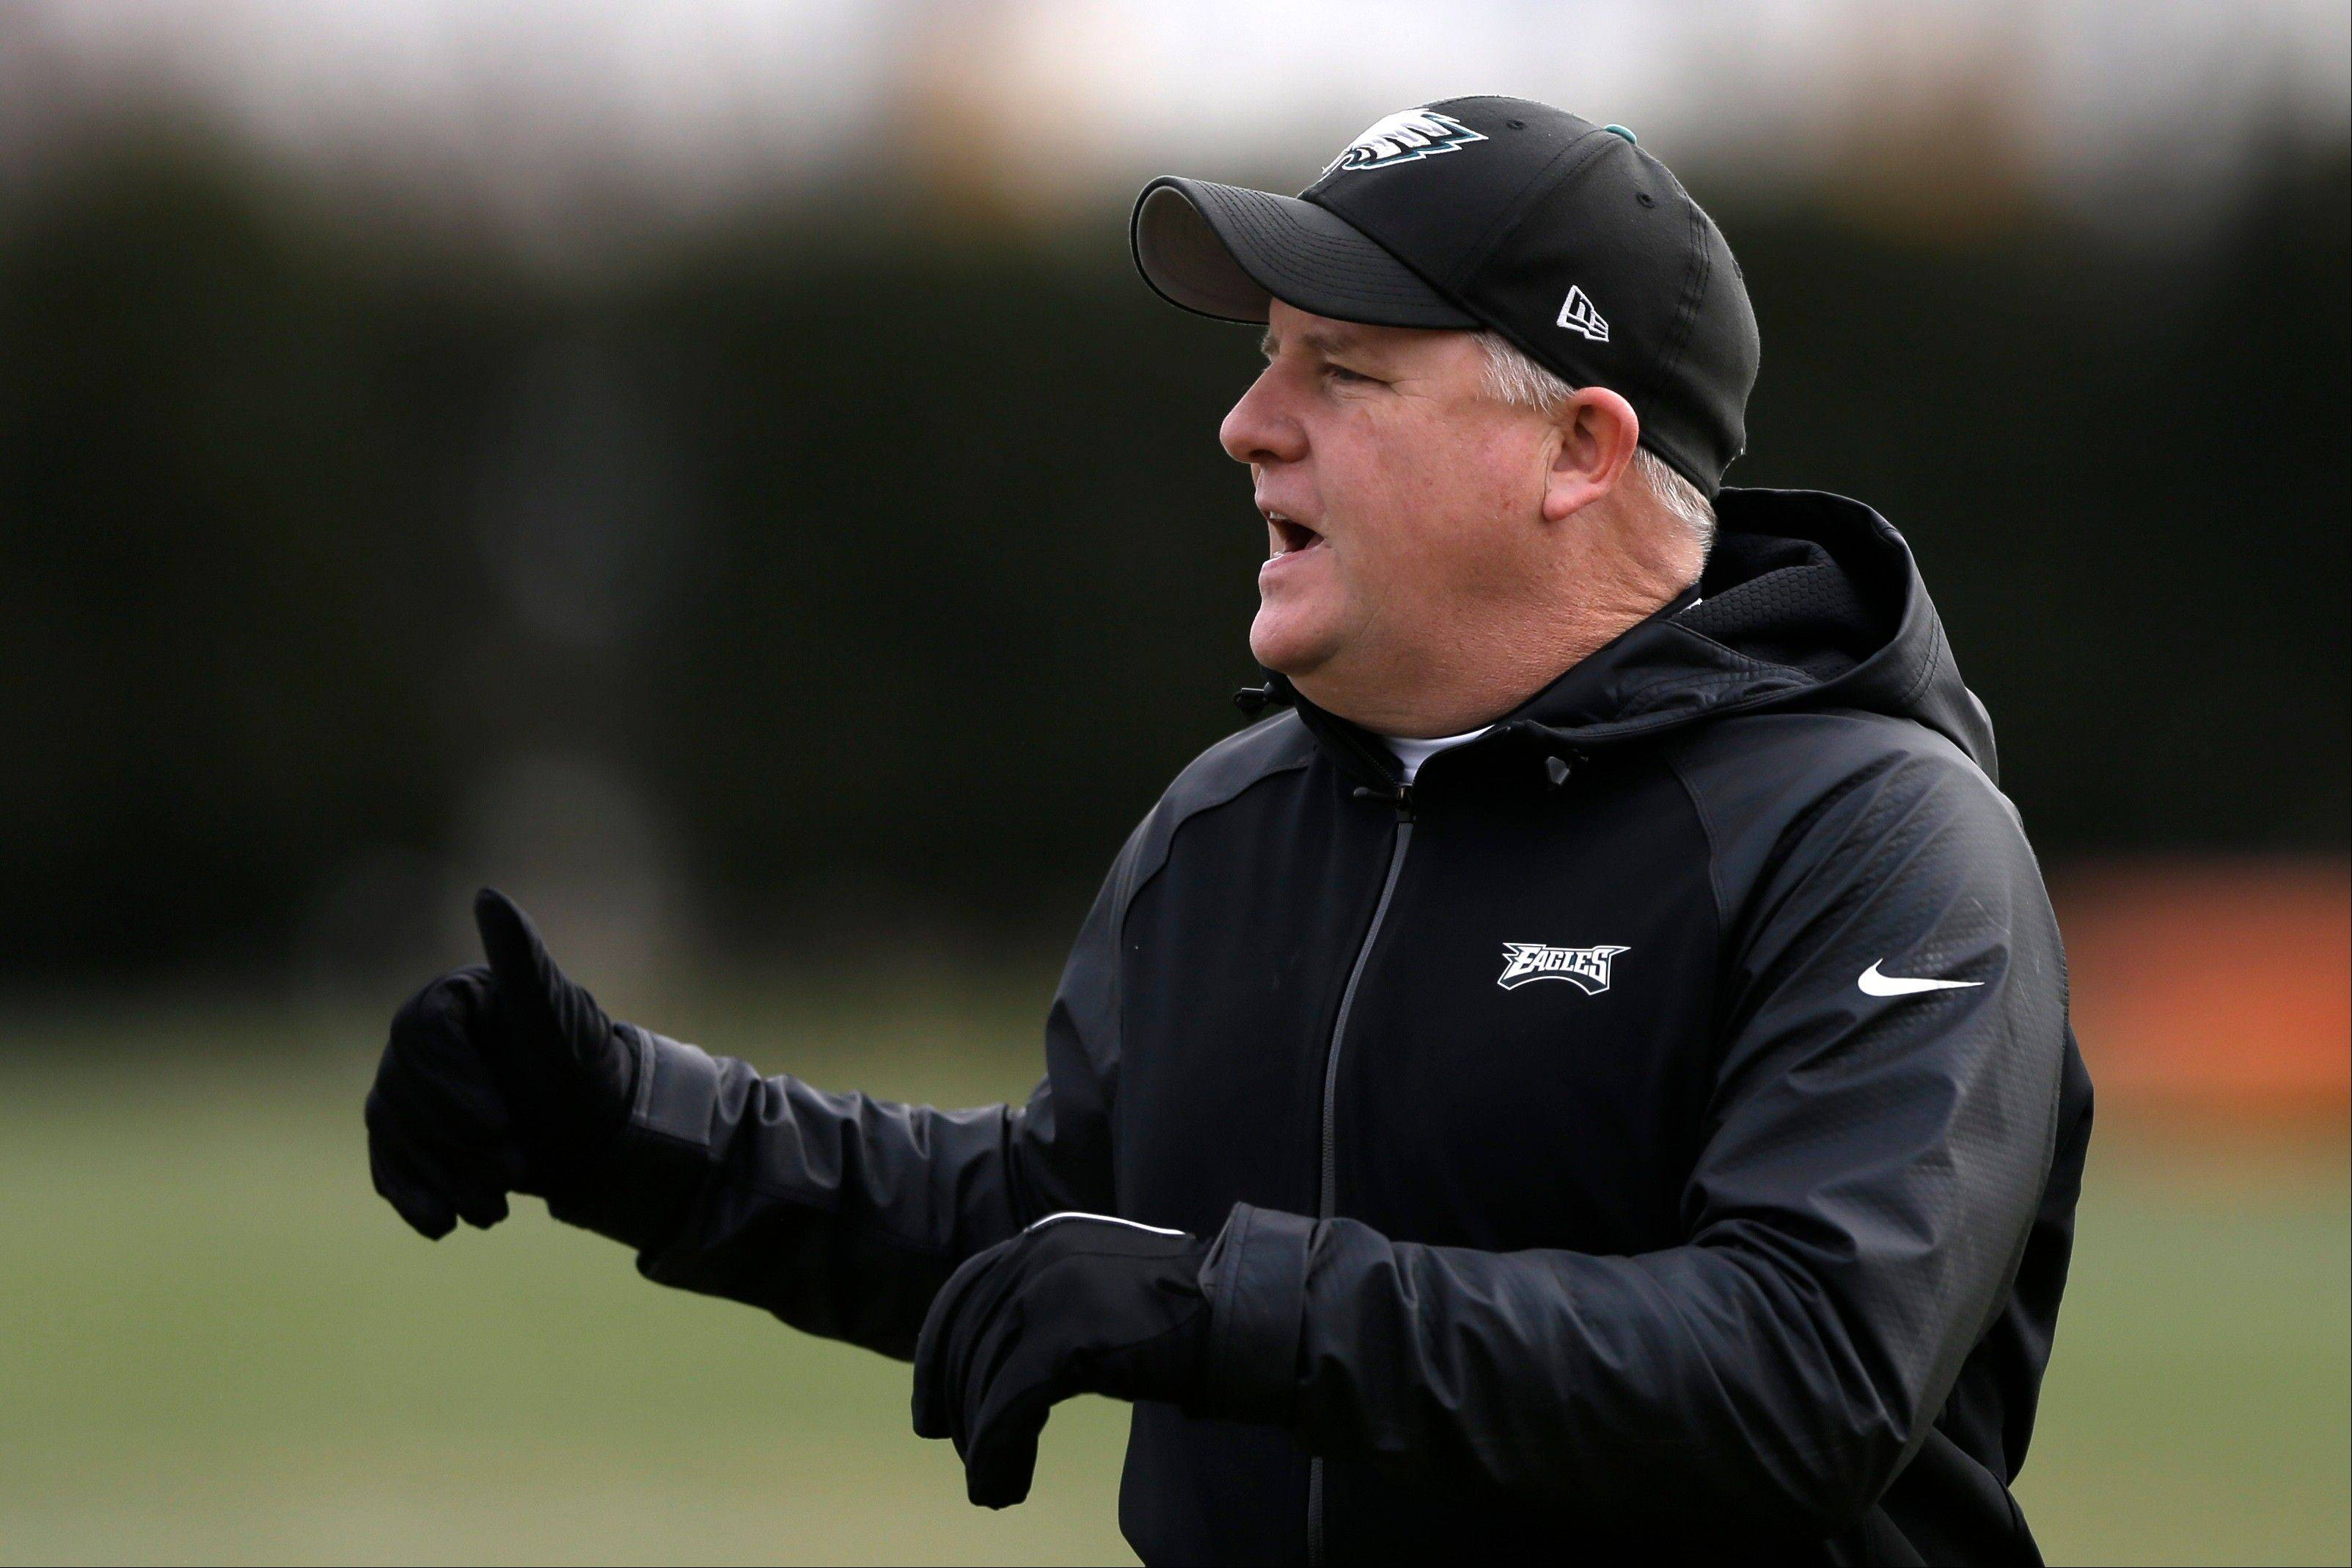 Philadelphia Eagles head coach Chip Kelly will lead his team against the New Orleans Saints in a wild-card playoff game on Saturday.